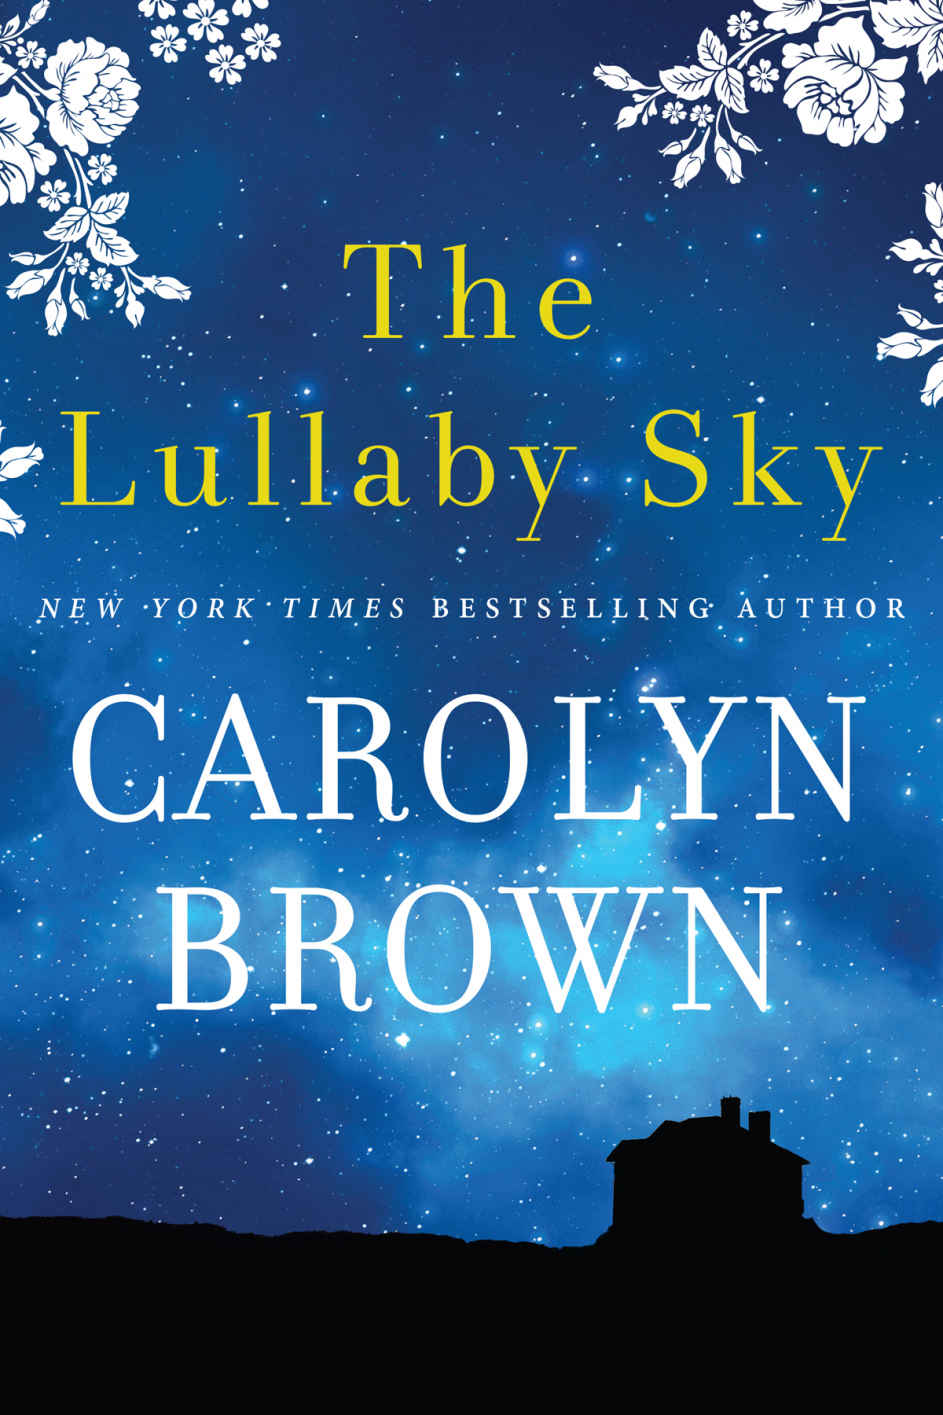 The Lullaby Sky - Carolyn Brown [kindle] [mobi]